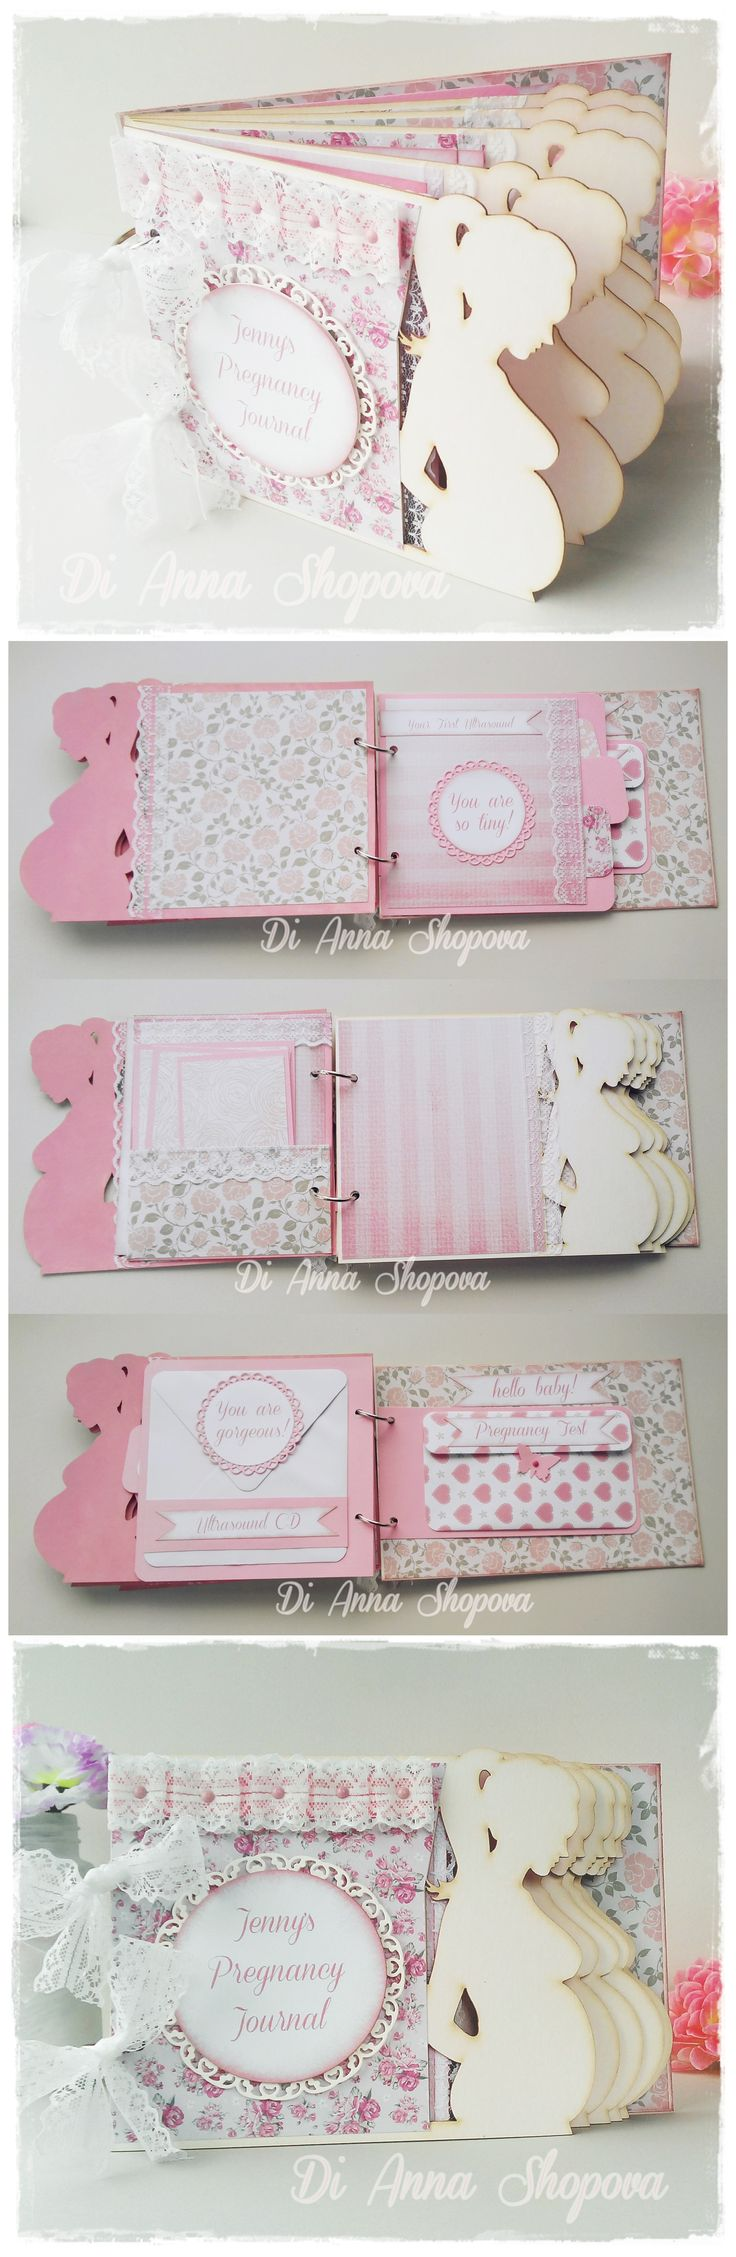 How to scrapbook baby book - 25 Best Ideas About Pregnancy Scrapbook On Pinterest Scrapbook Ideas Baby Ultrasound Scrapbook And Baby Scrapbook Layouts